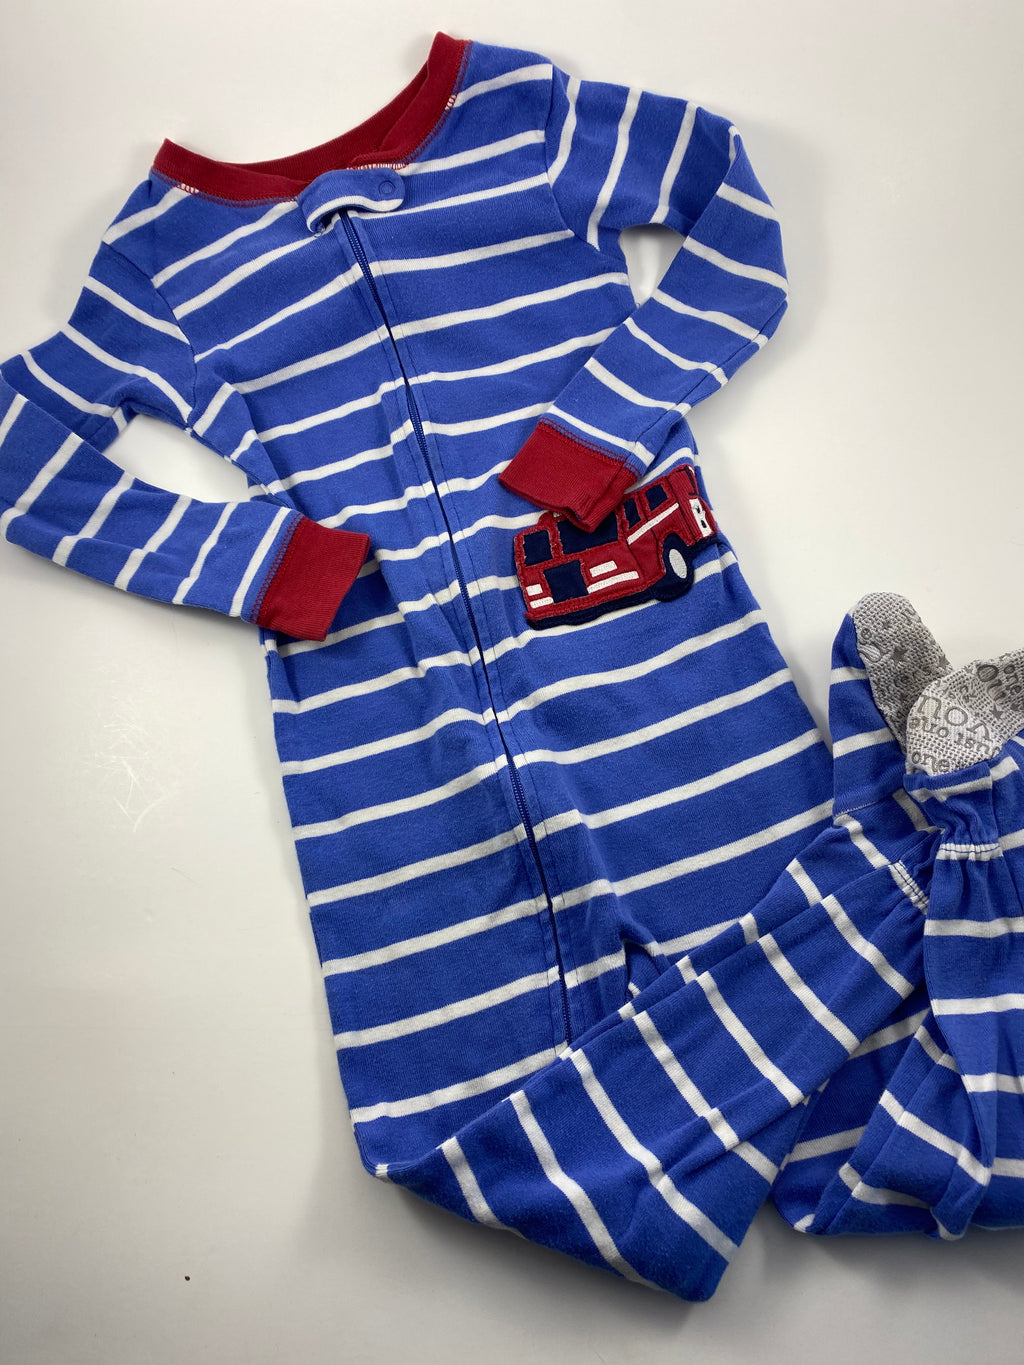 Boy's Long Sleeve Pajamas - Size 3t